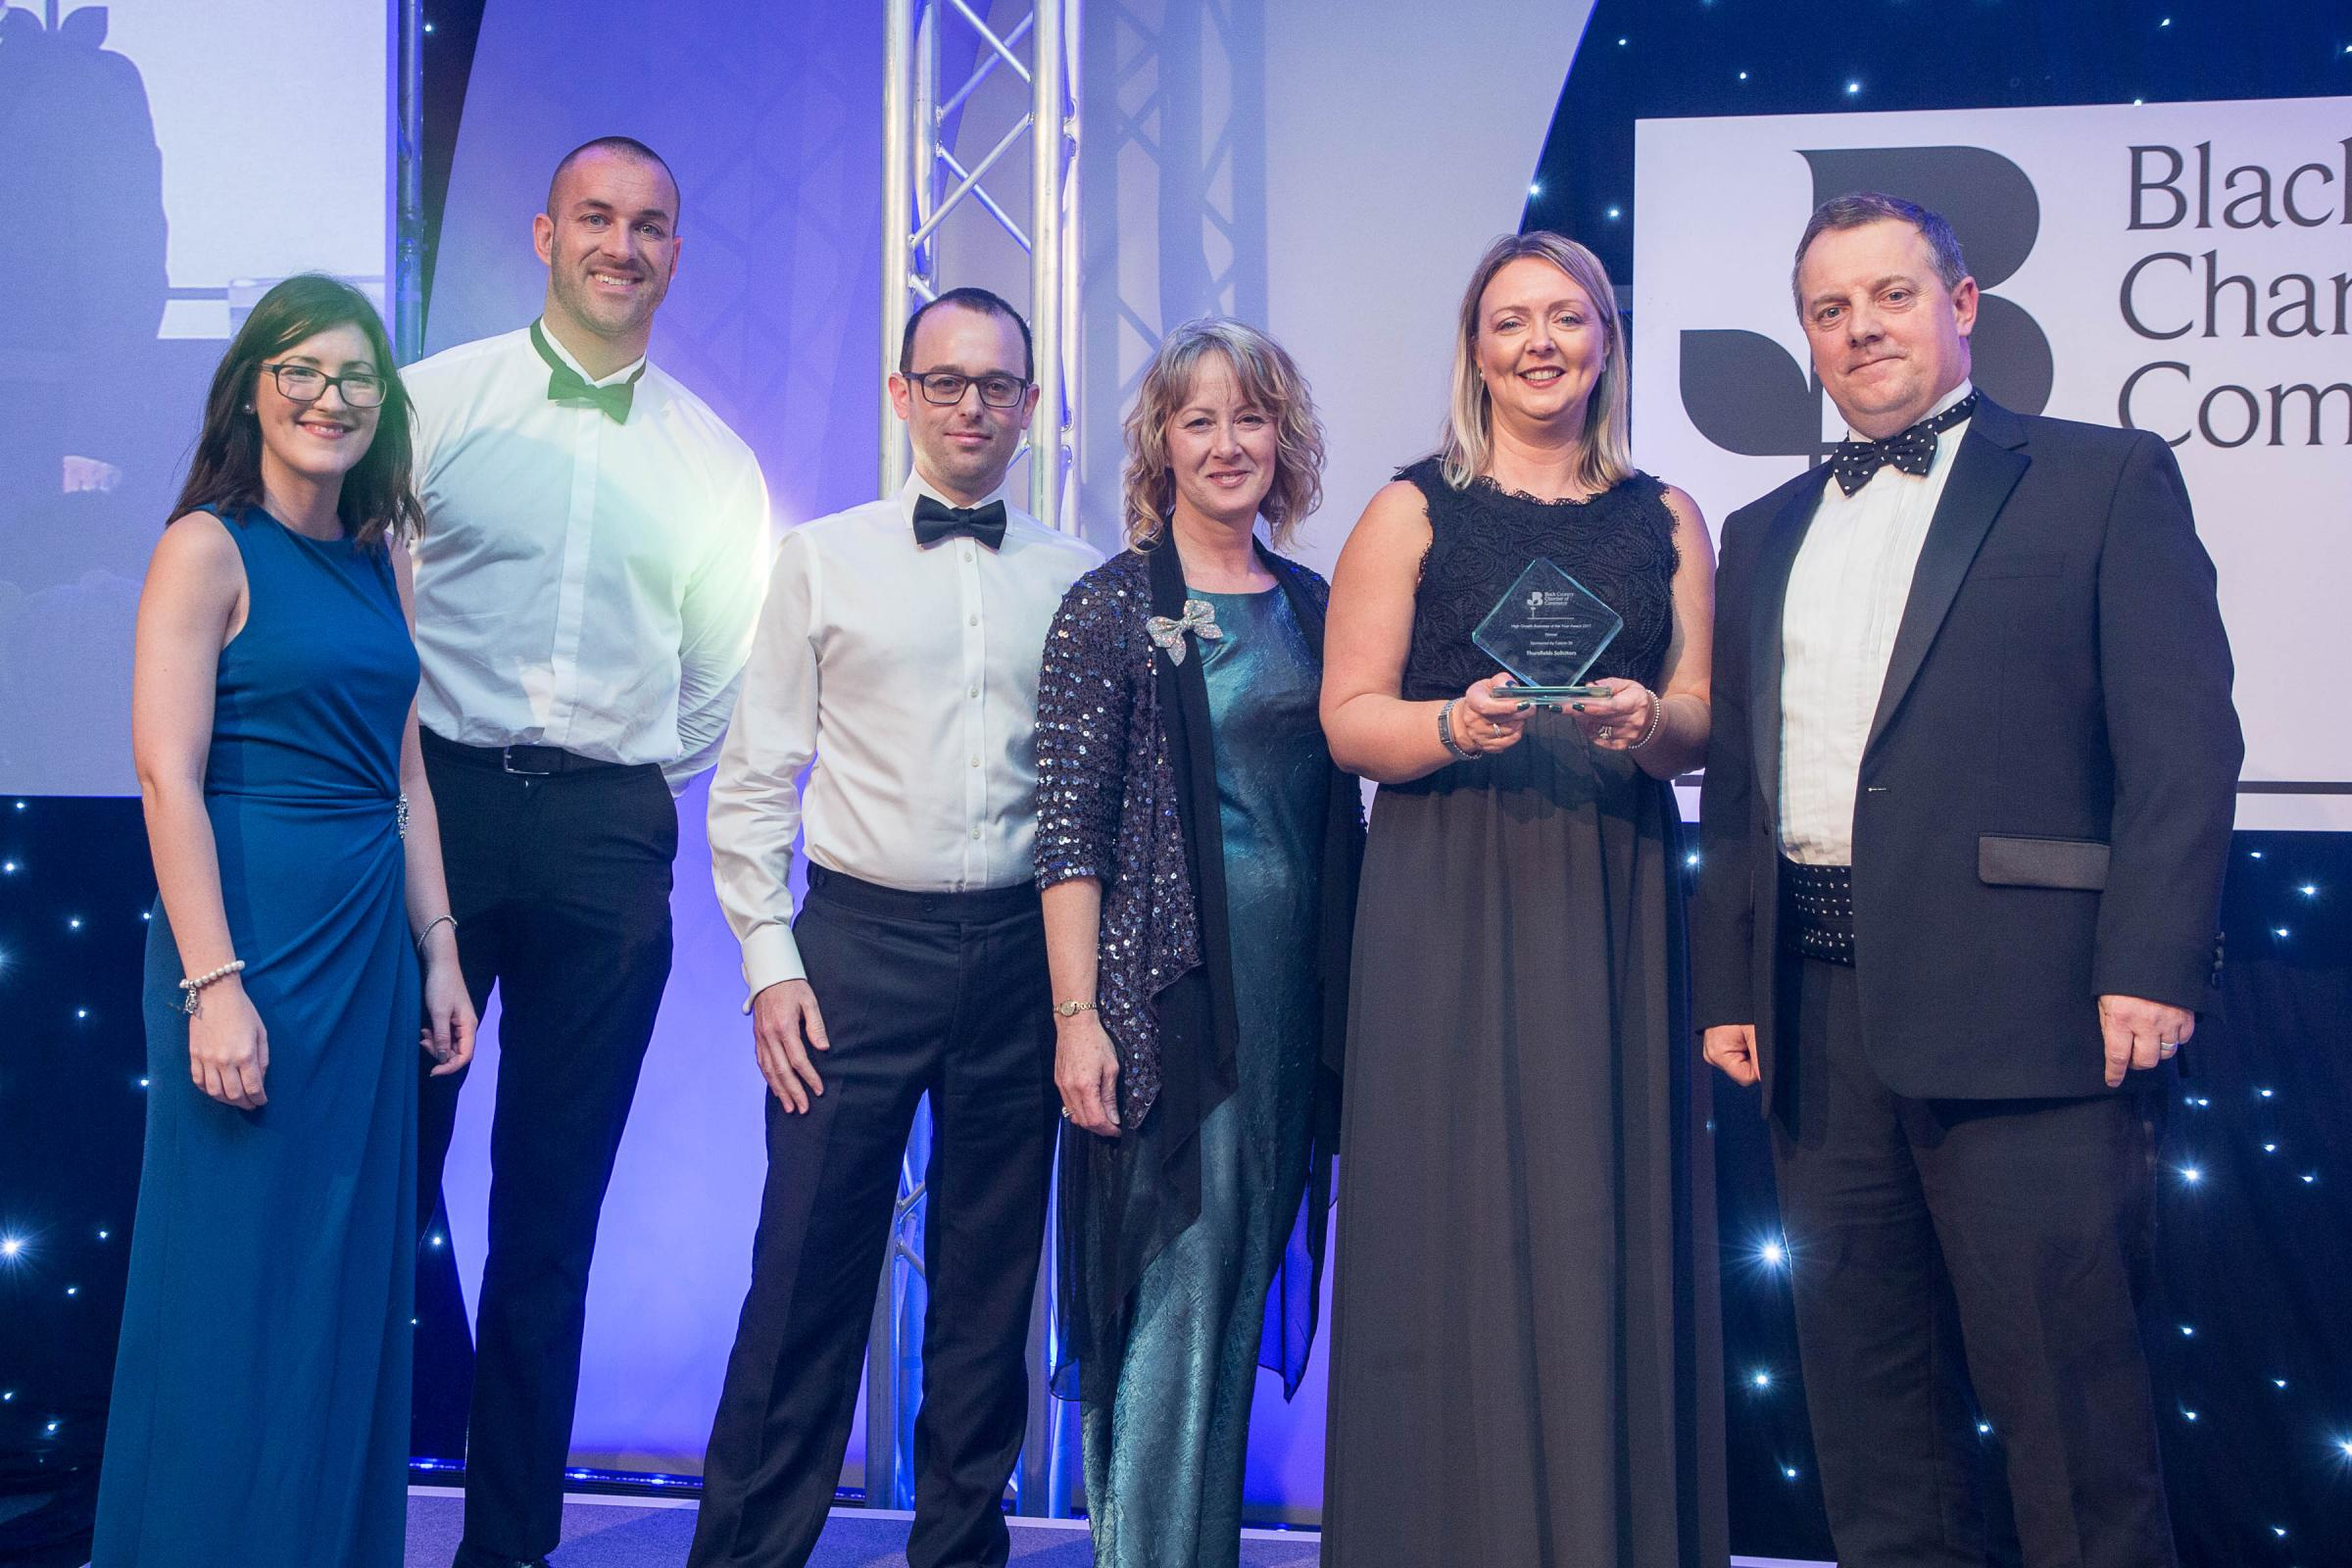 Thursfields Solicitors' Kirsty Underhill, Tim Edwards, Gareth Burge, Jane Rudge and Julia Warrilow pick up their Black Country Chamber of Commerce award from James Thomas-Horton. Photo: Codsall Photographic